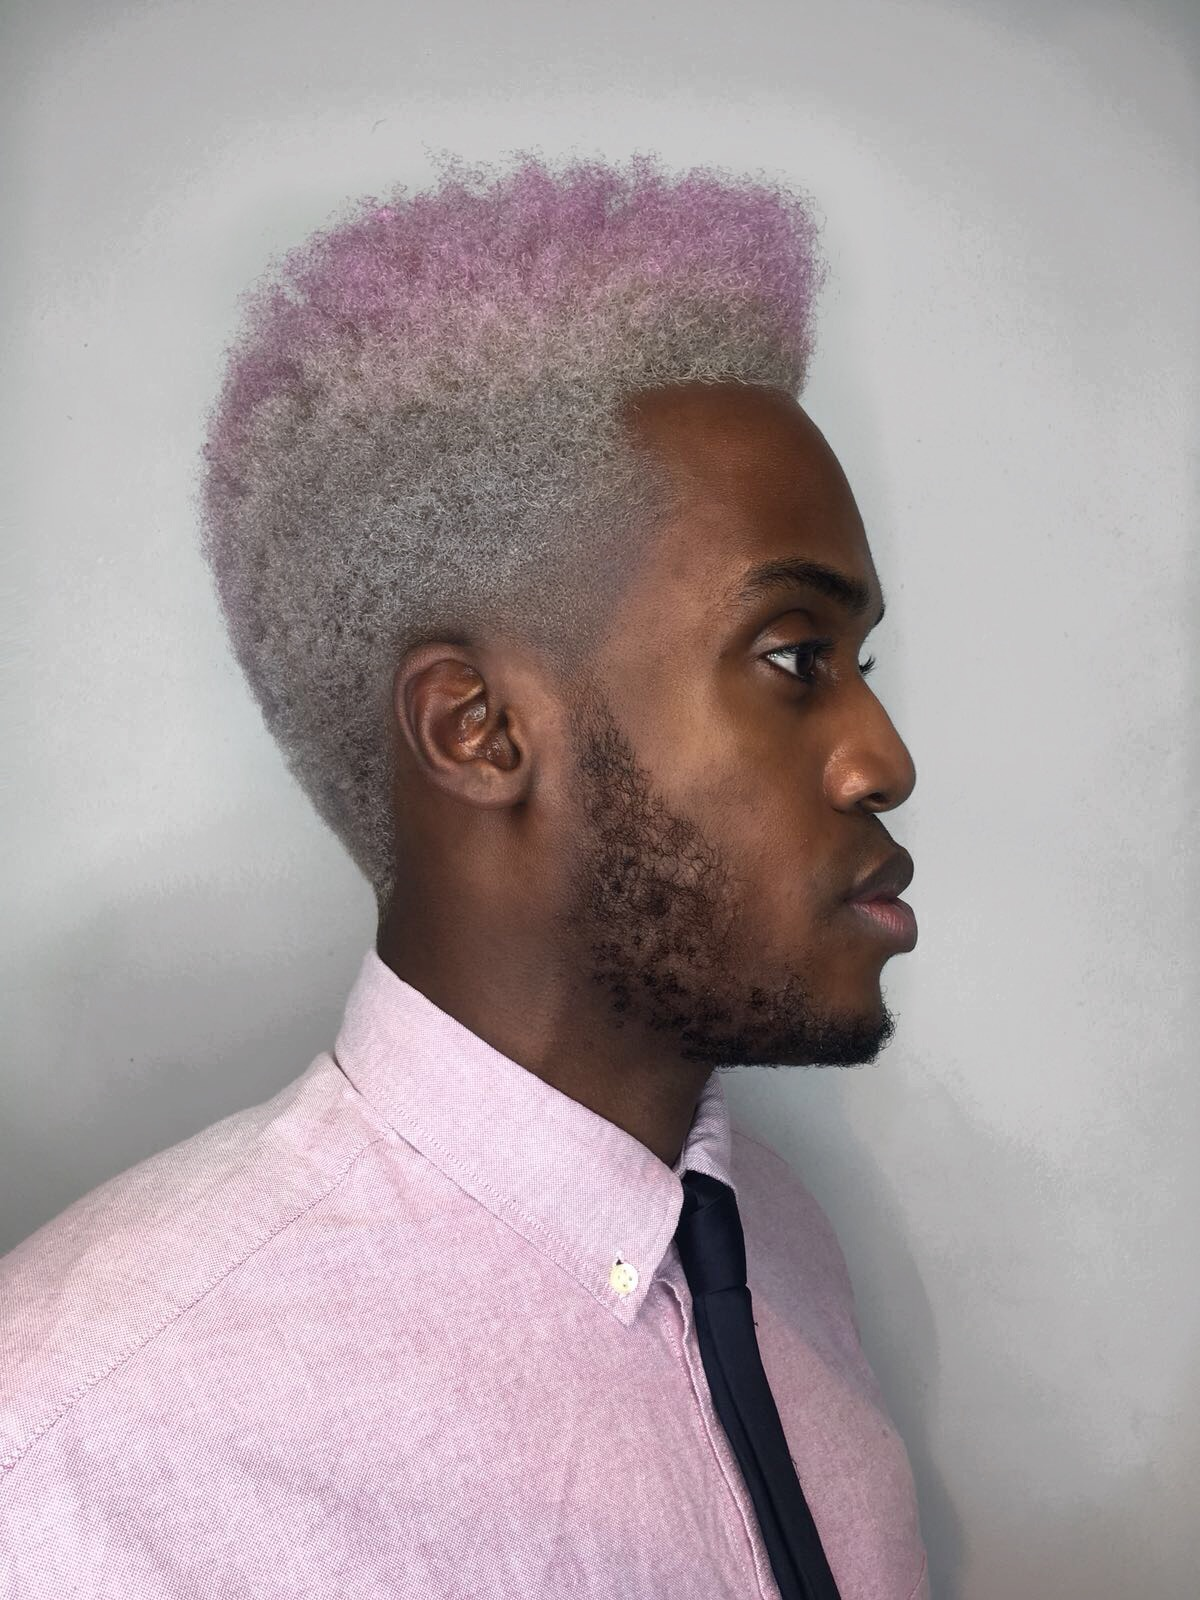 Man with pink hair